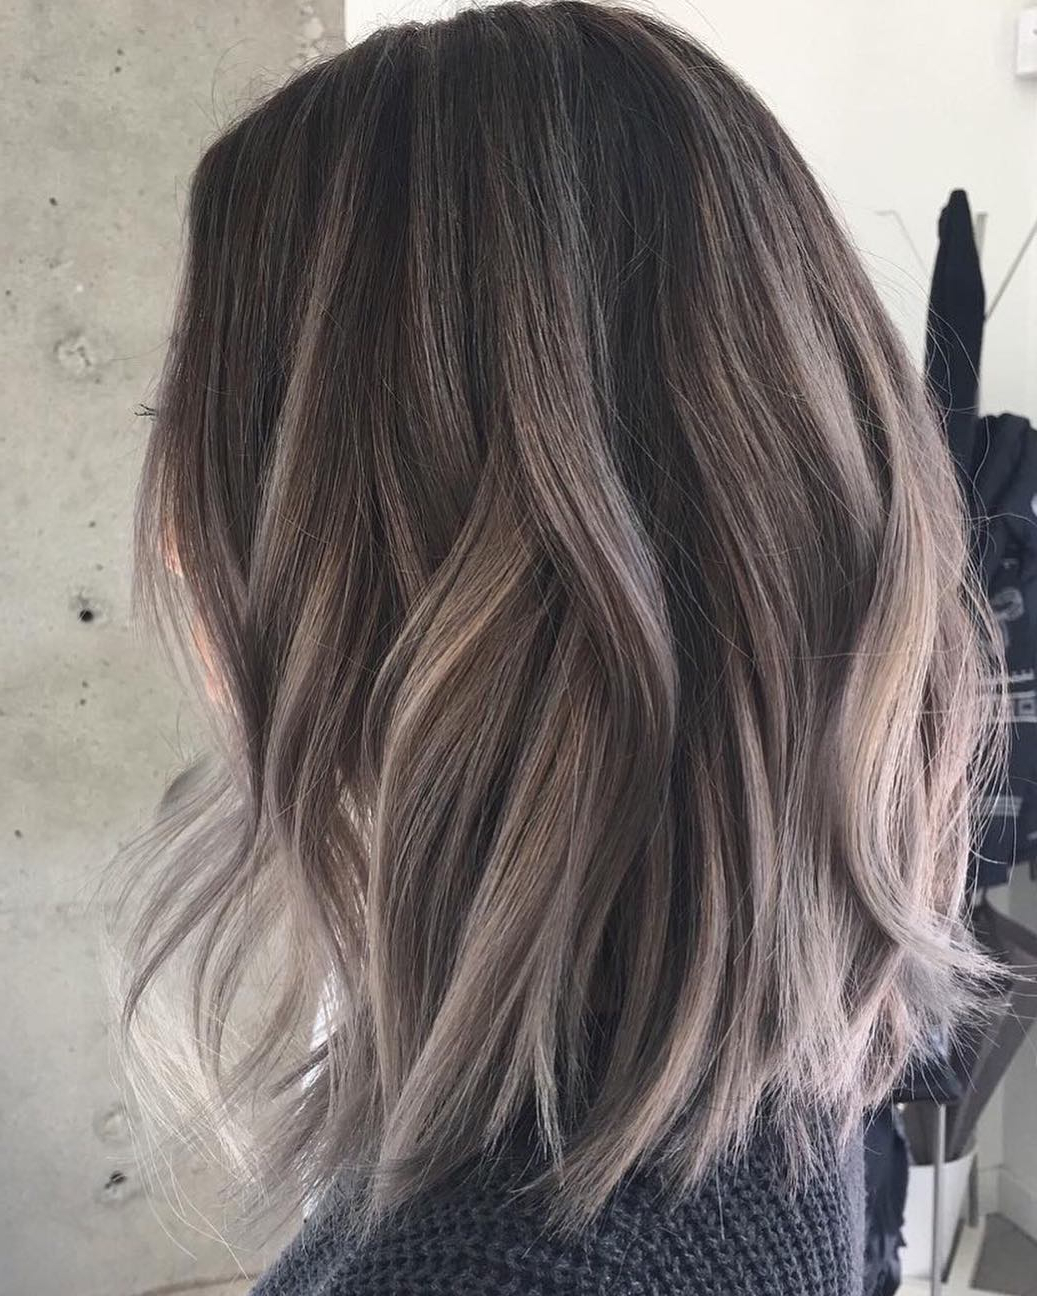 10 Medium Length Hair Color Ideas 2019 Within Most Recently Released Gray Hair Medium Hairstyles (View 2 of 20)